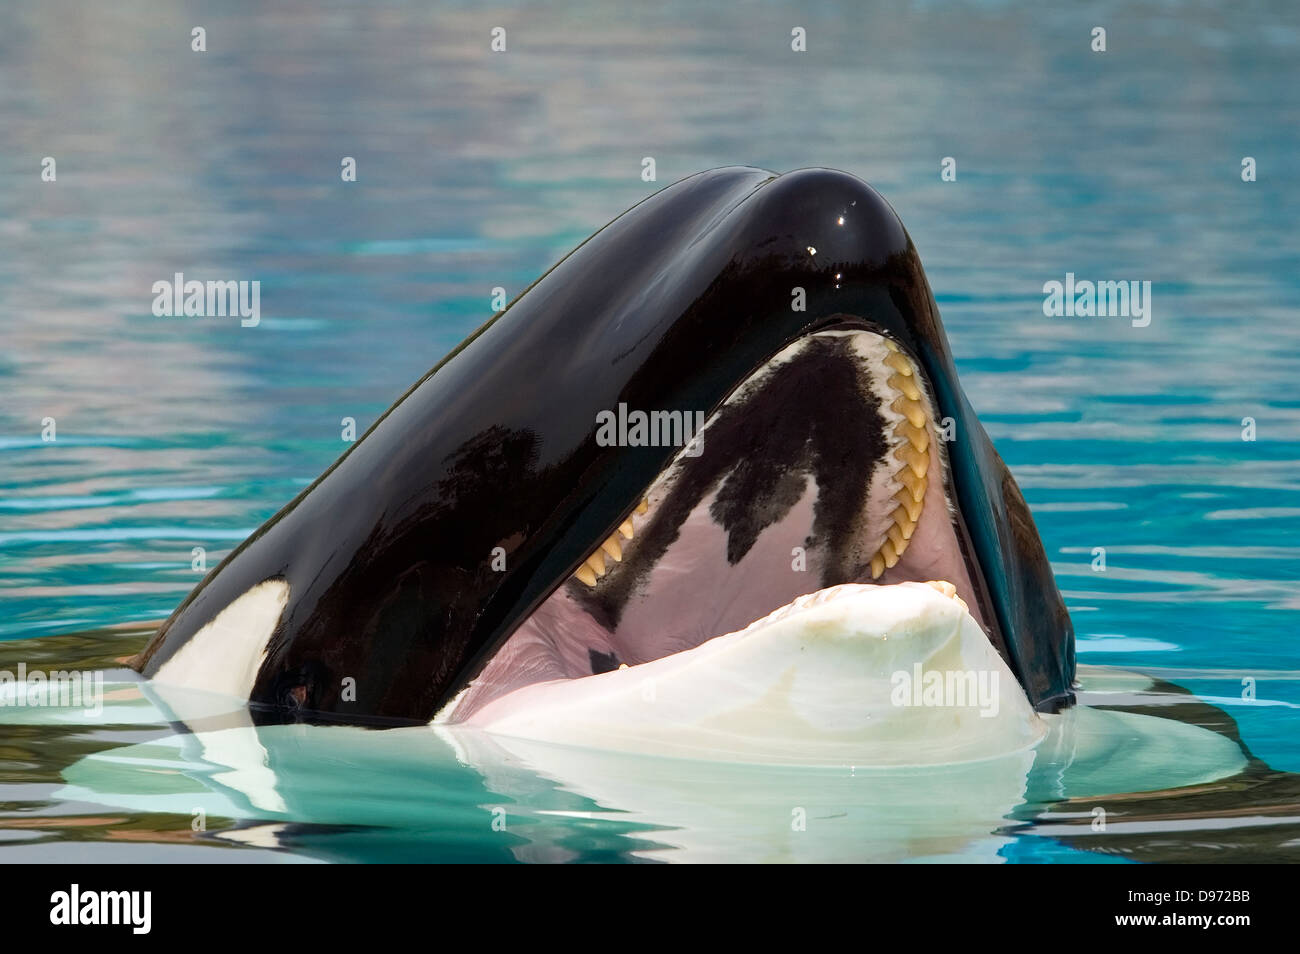 Killer Whale open mouth - Stock Image